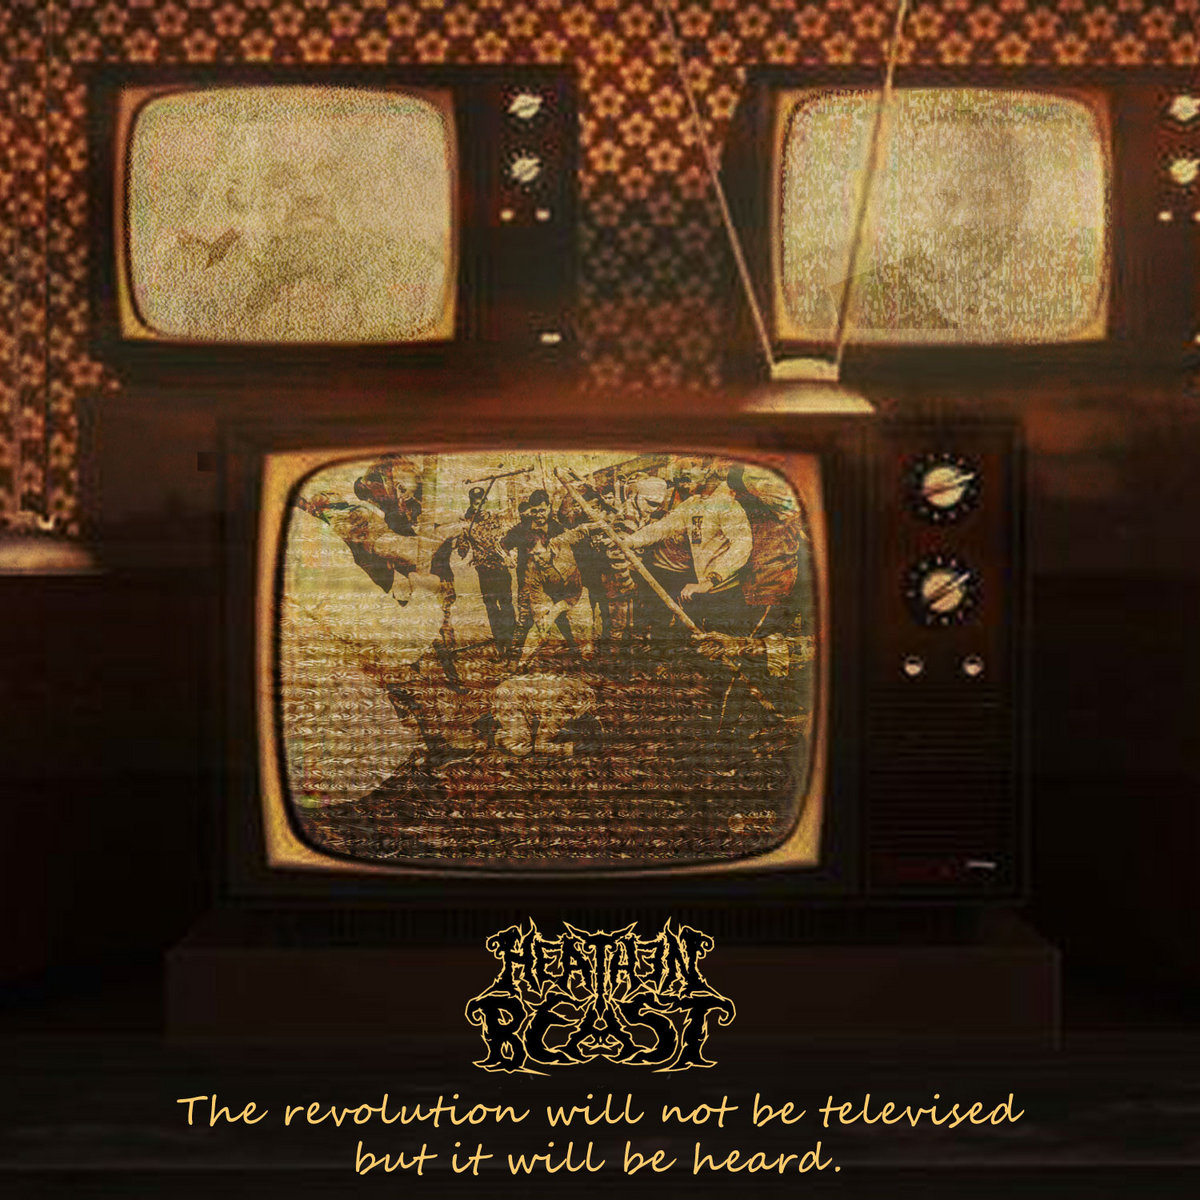 HEATHEN BEAST - The Revolution Will Not Be Televised But It Will Be Heard cover